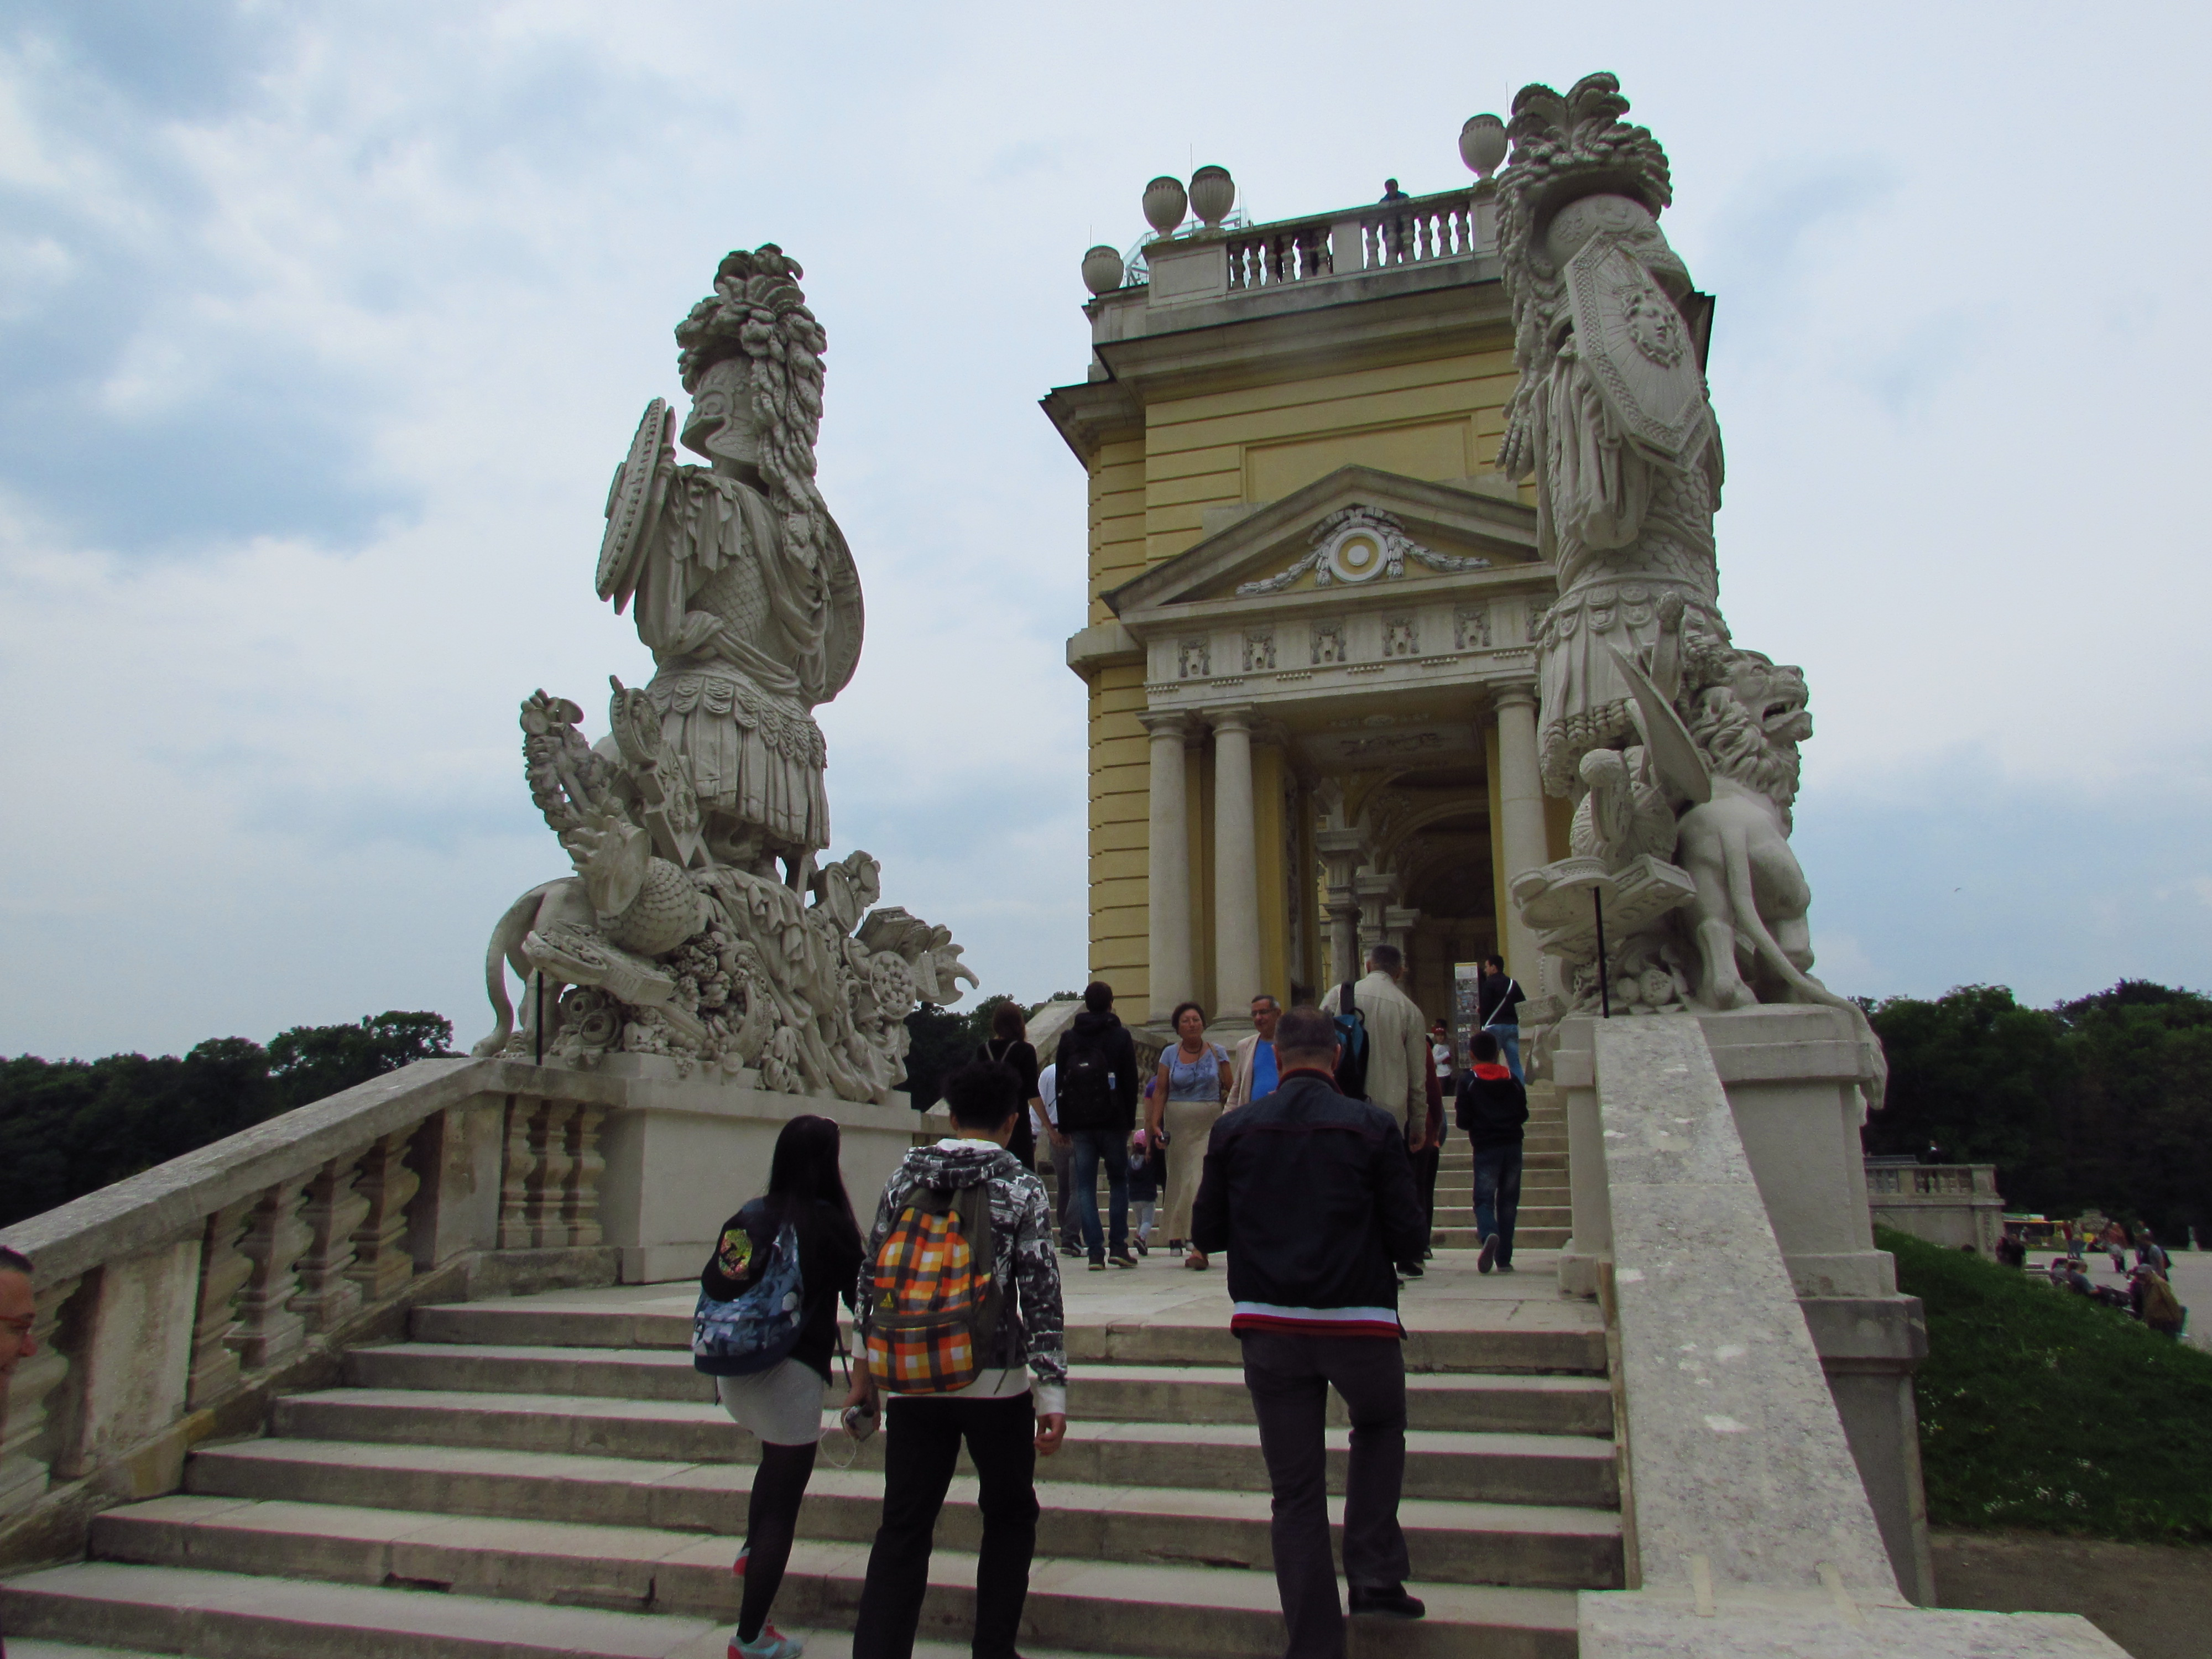 The gloriette in vienna 39 s sch nbrunn palace - Gloriette fer smeden ...